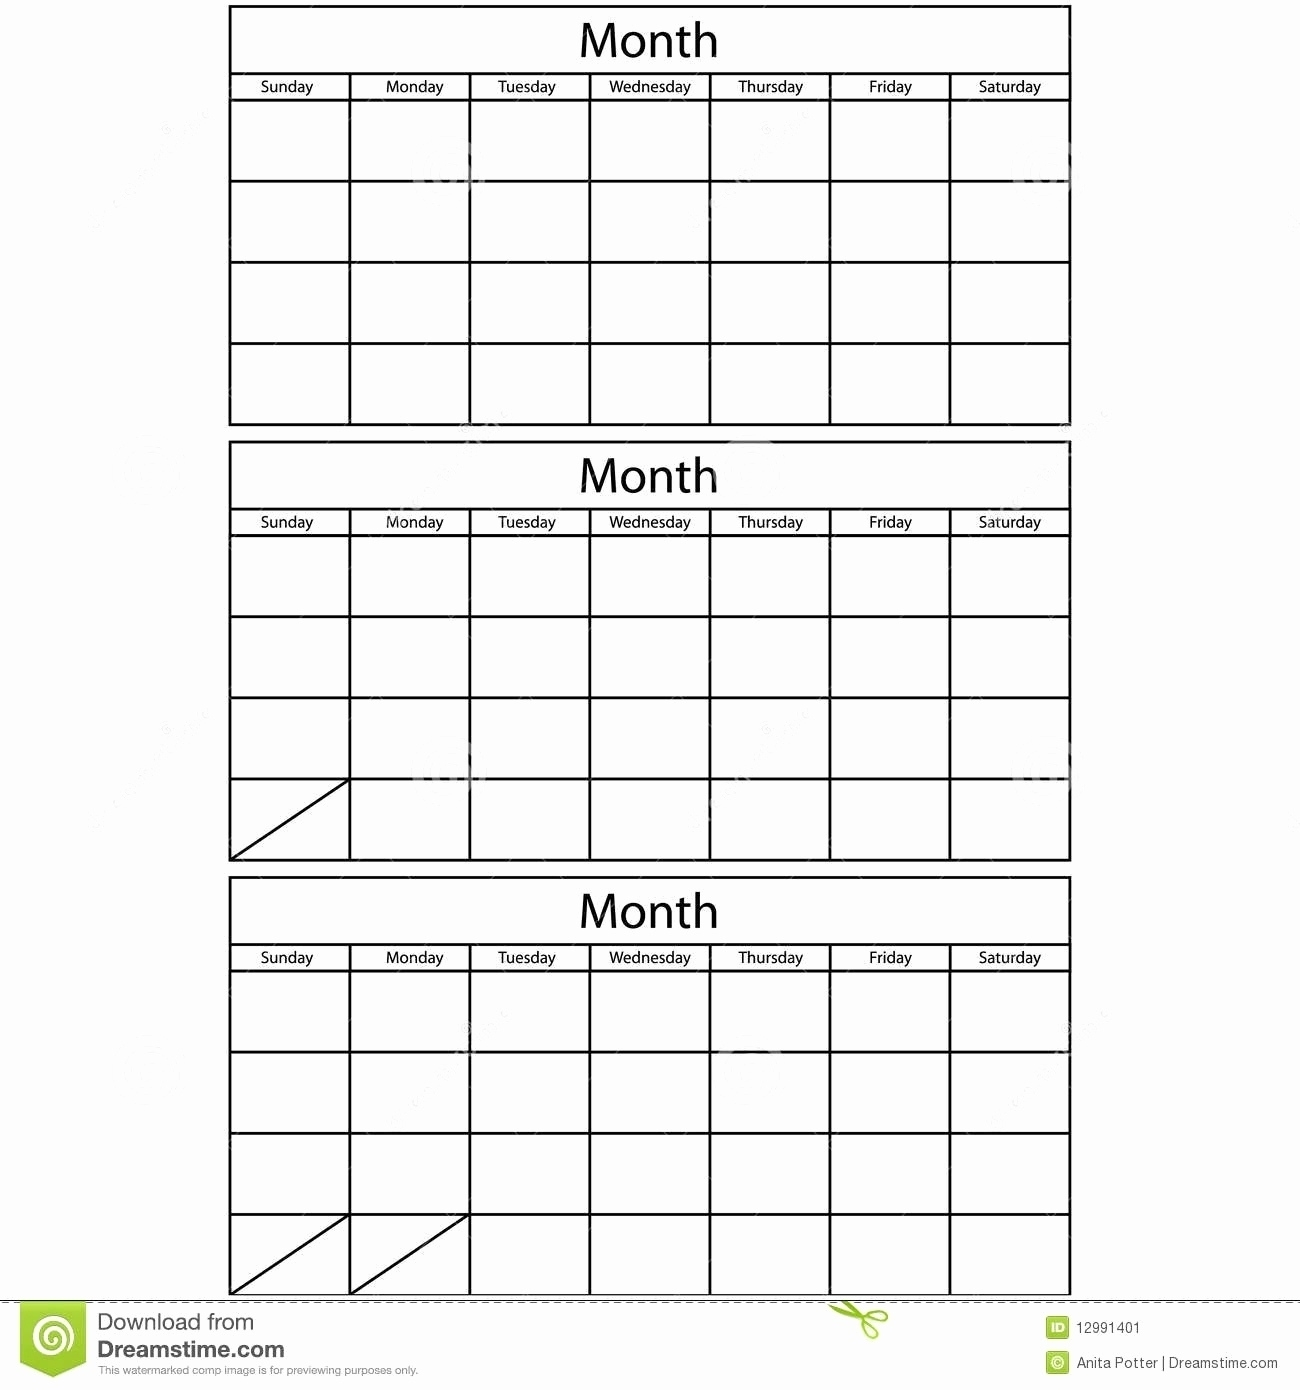 3 Month Planning Calendar Free Printable • Printable Blank Calendar throughout Free Printable Calendar For 3 Months